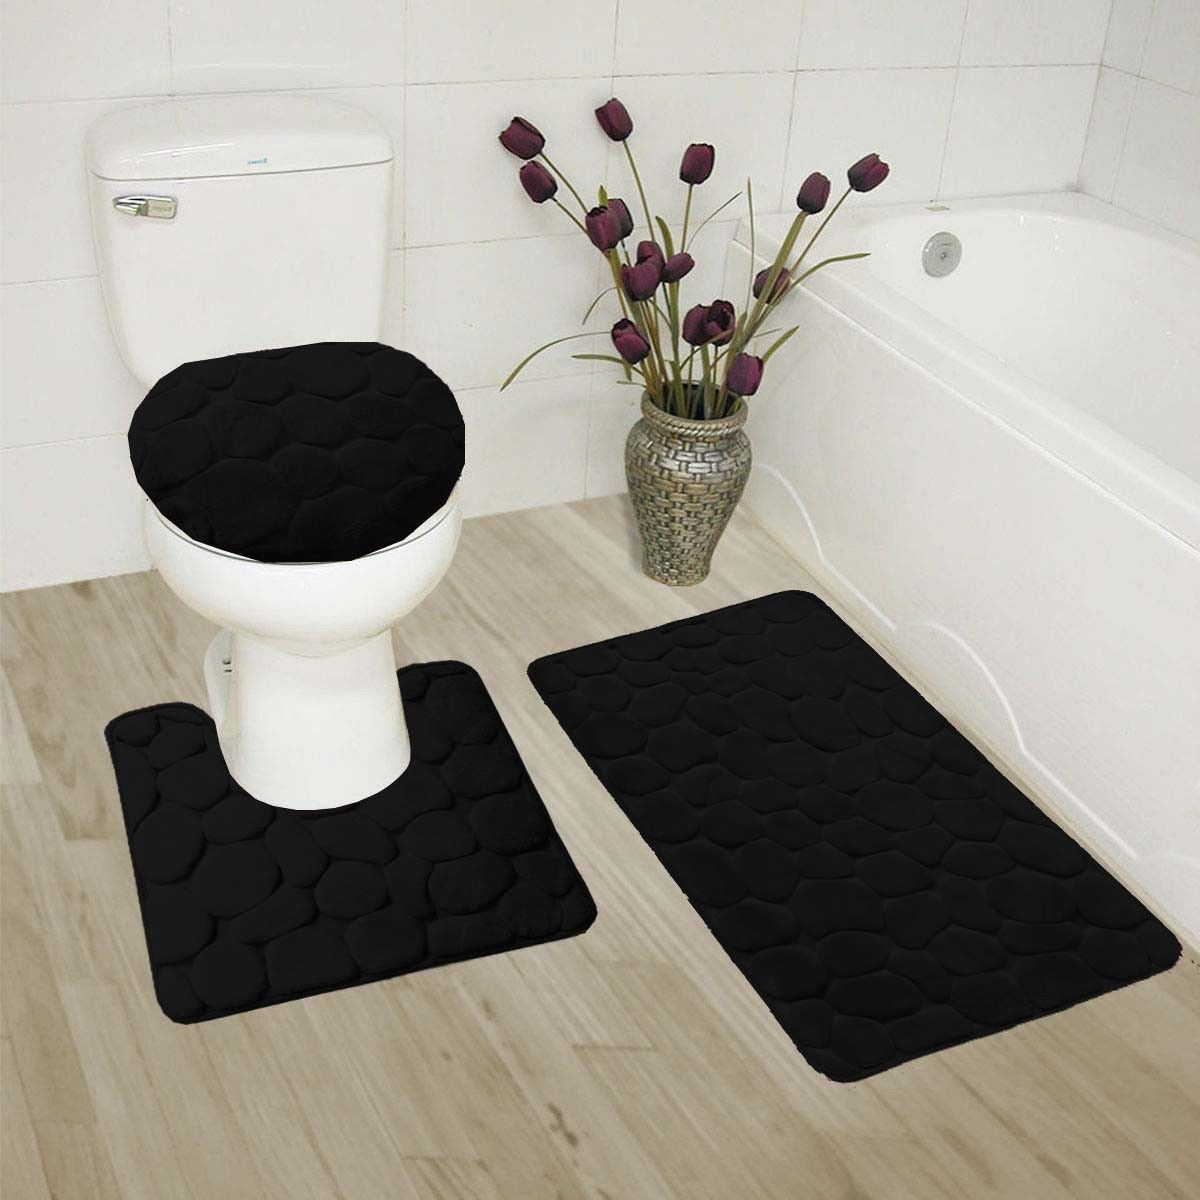 """ROCK BLACK 3-Piece Embossed Bathroom Rug Set Super Soft Memory Foam Bath Mat, Rug 19""""x 30"""", Contour Mat 19""""x19"""" and Toilet Lid Cover 19""""x19"""" with Non-Skid Rubber Back"""